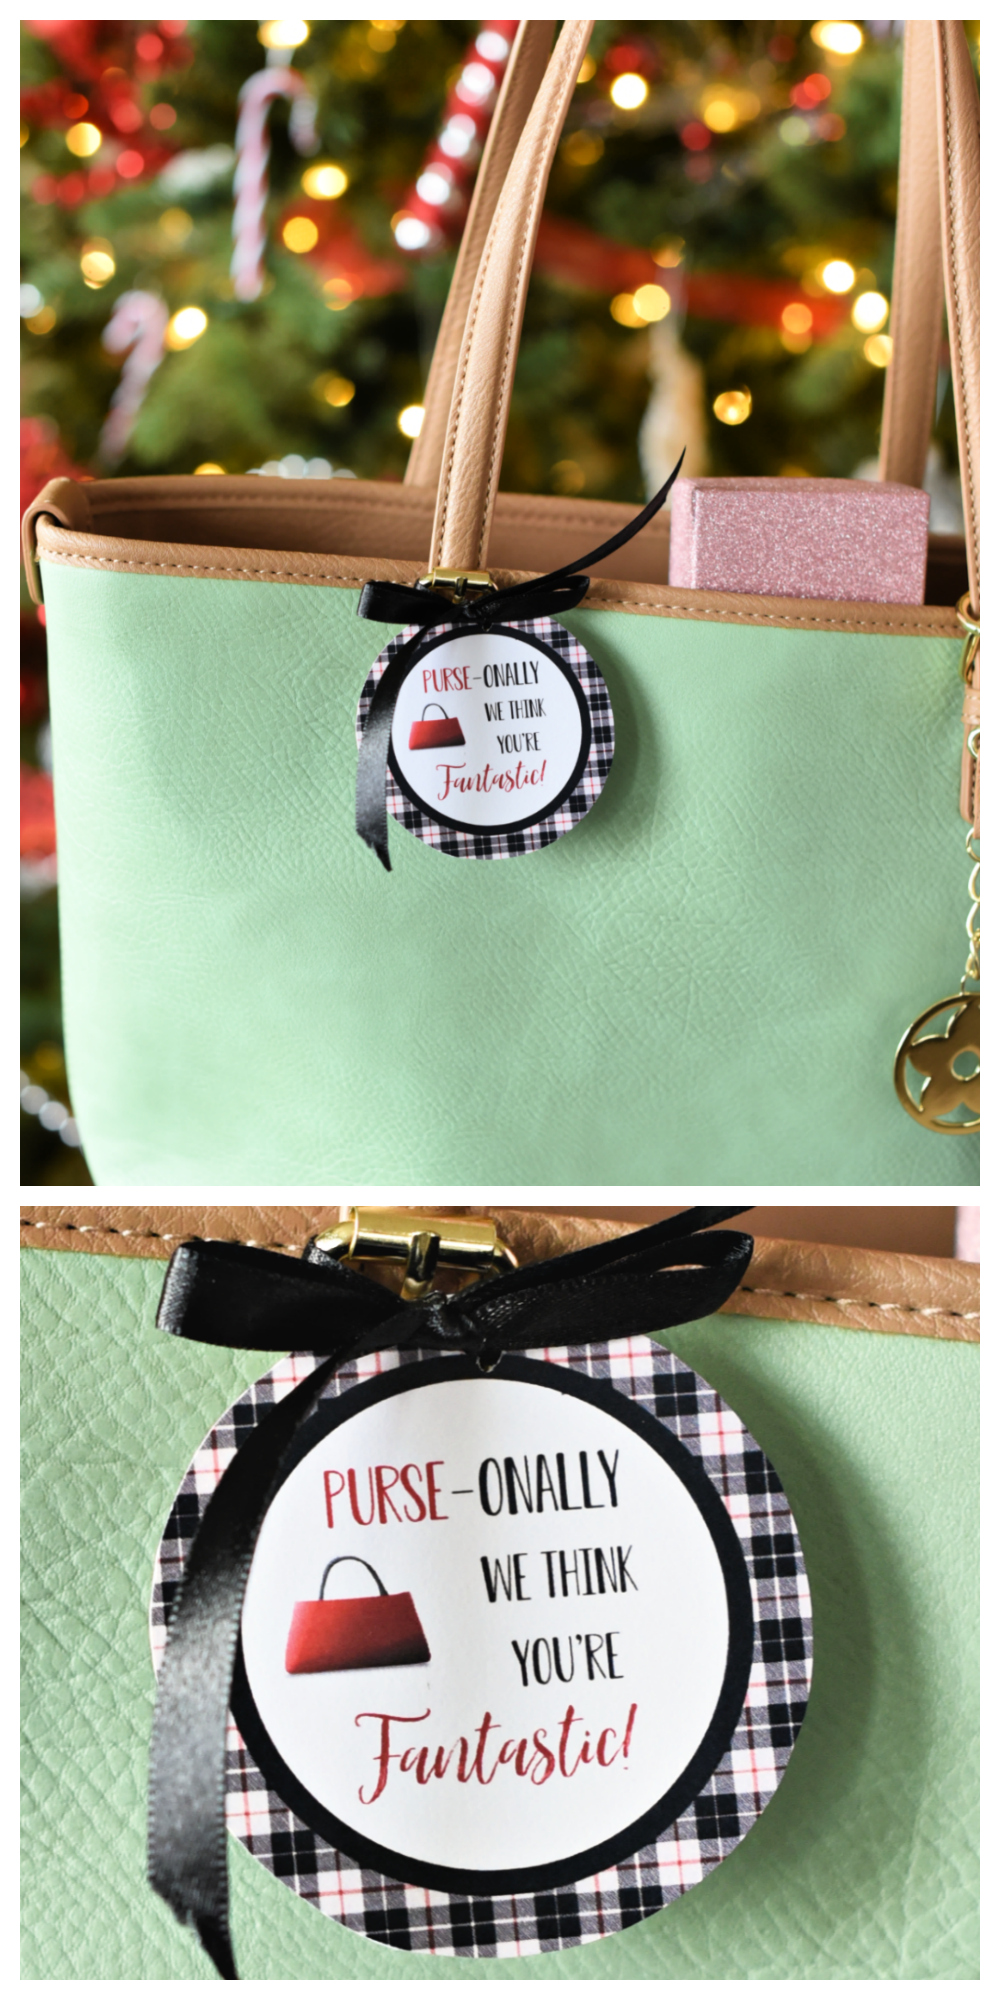 Purse-onally We Think You are Fantastic! This is a fun and creative gift for her. Whether it's your mom, mother in law, grandma, or friends, this is a great gift for women. Fill a purse with fun things and add this cute printable tag. #christmasgifts #christmasgiftidea #giftsforher